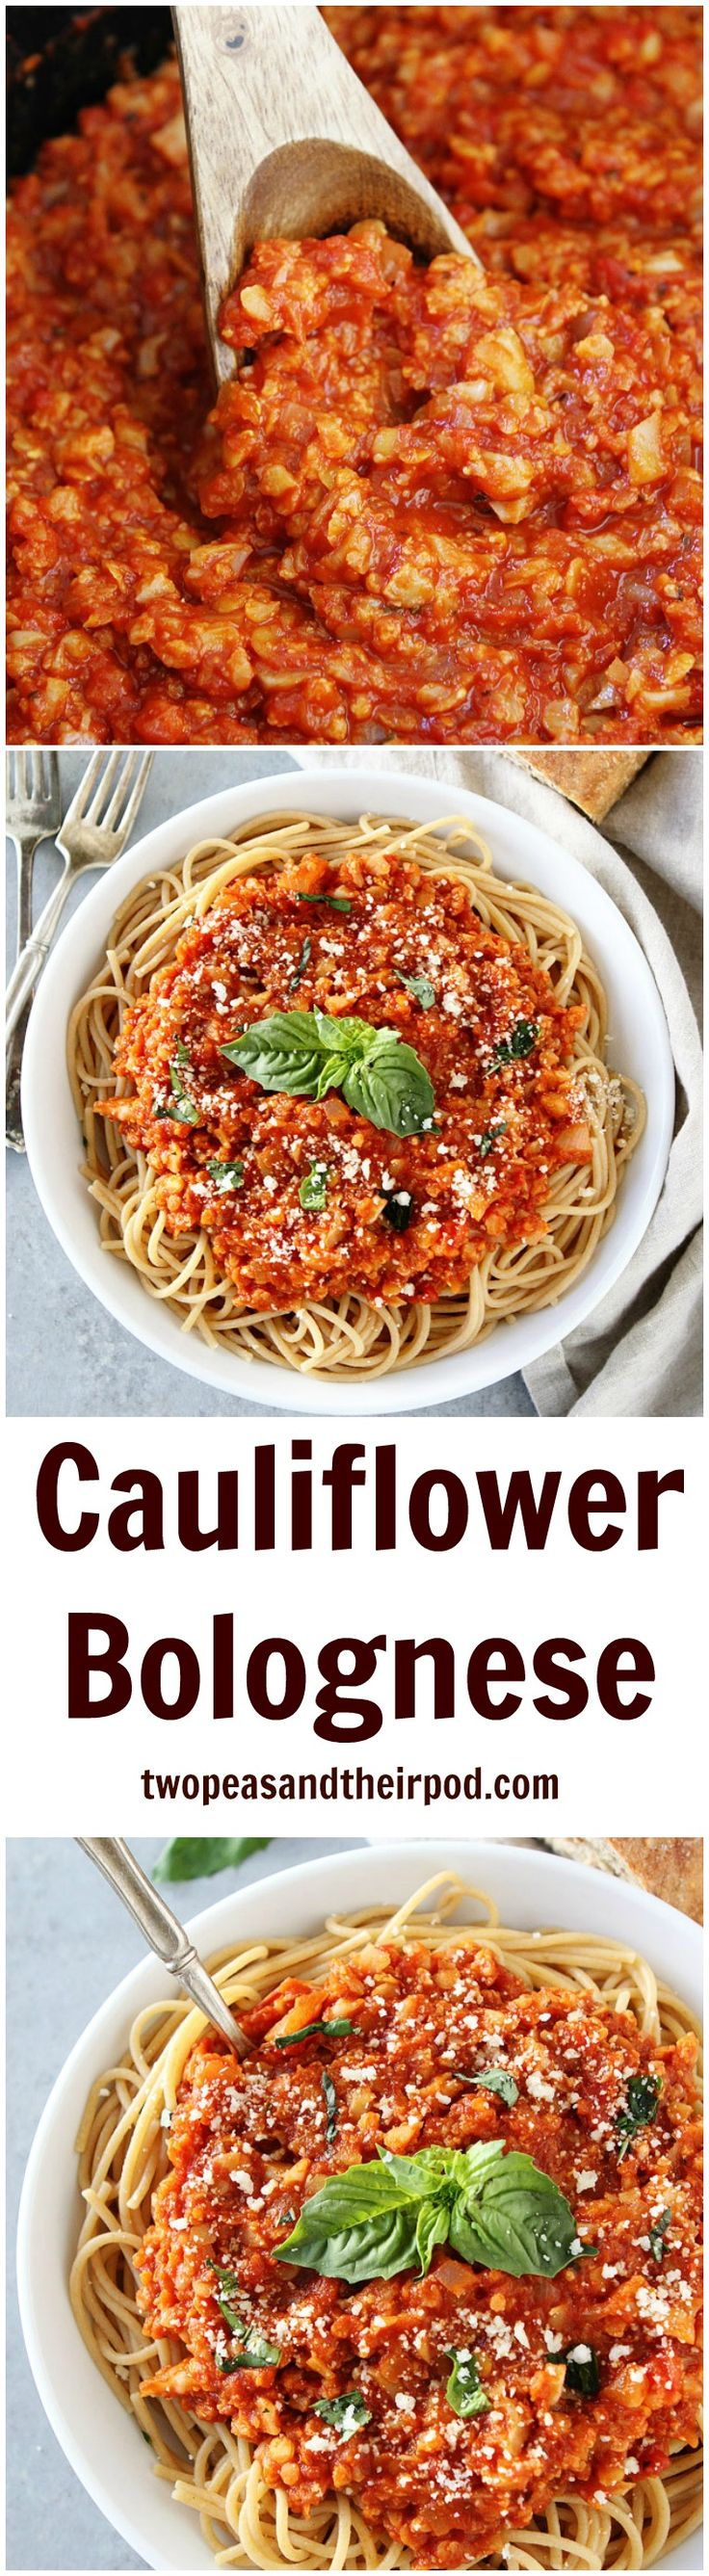 Cauliflower Bolognese Sauce Recipe on twopeasandtheirpod.com. You will never believe this healthy and hearty sauce is made with cauliflower. Even meat lovers and kids enjoy this delicious sauce! You have to try it!